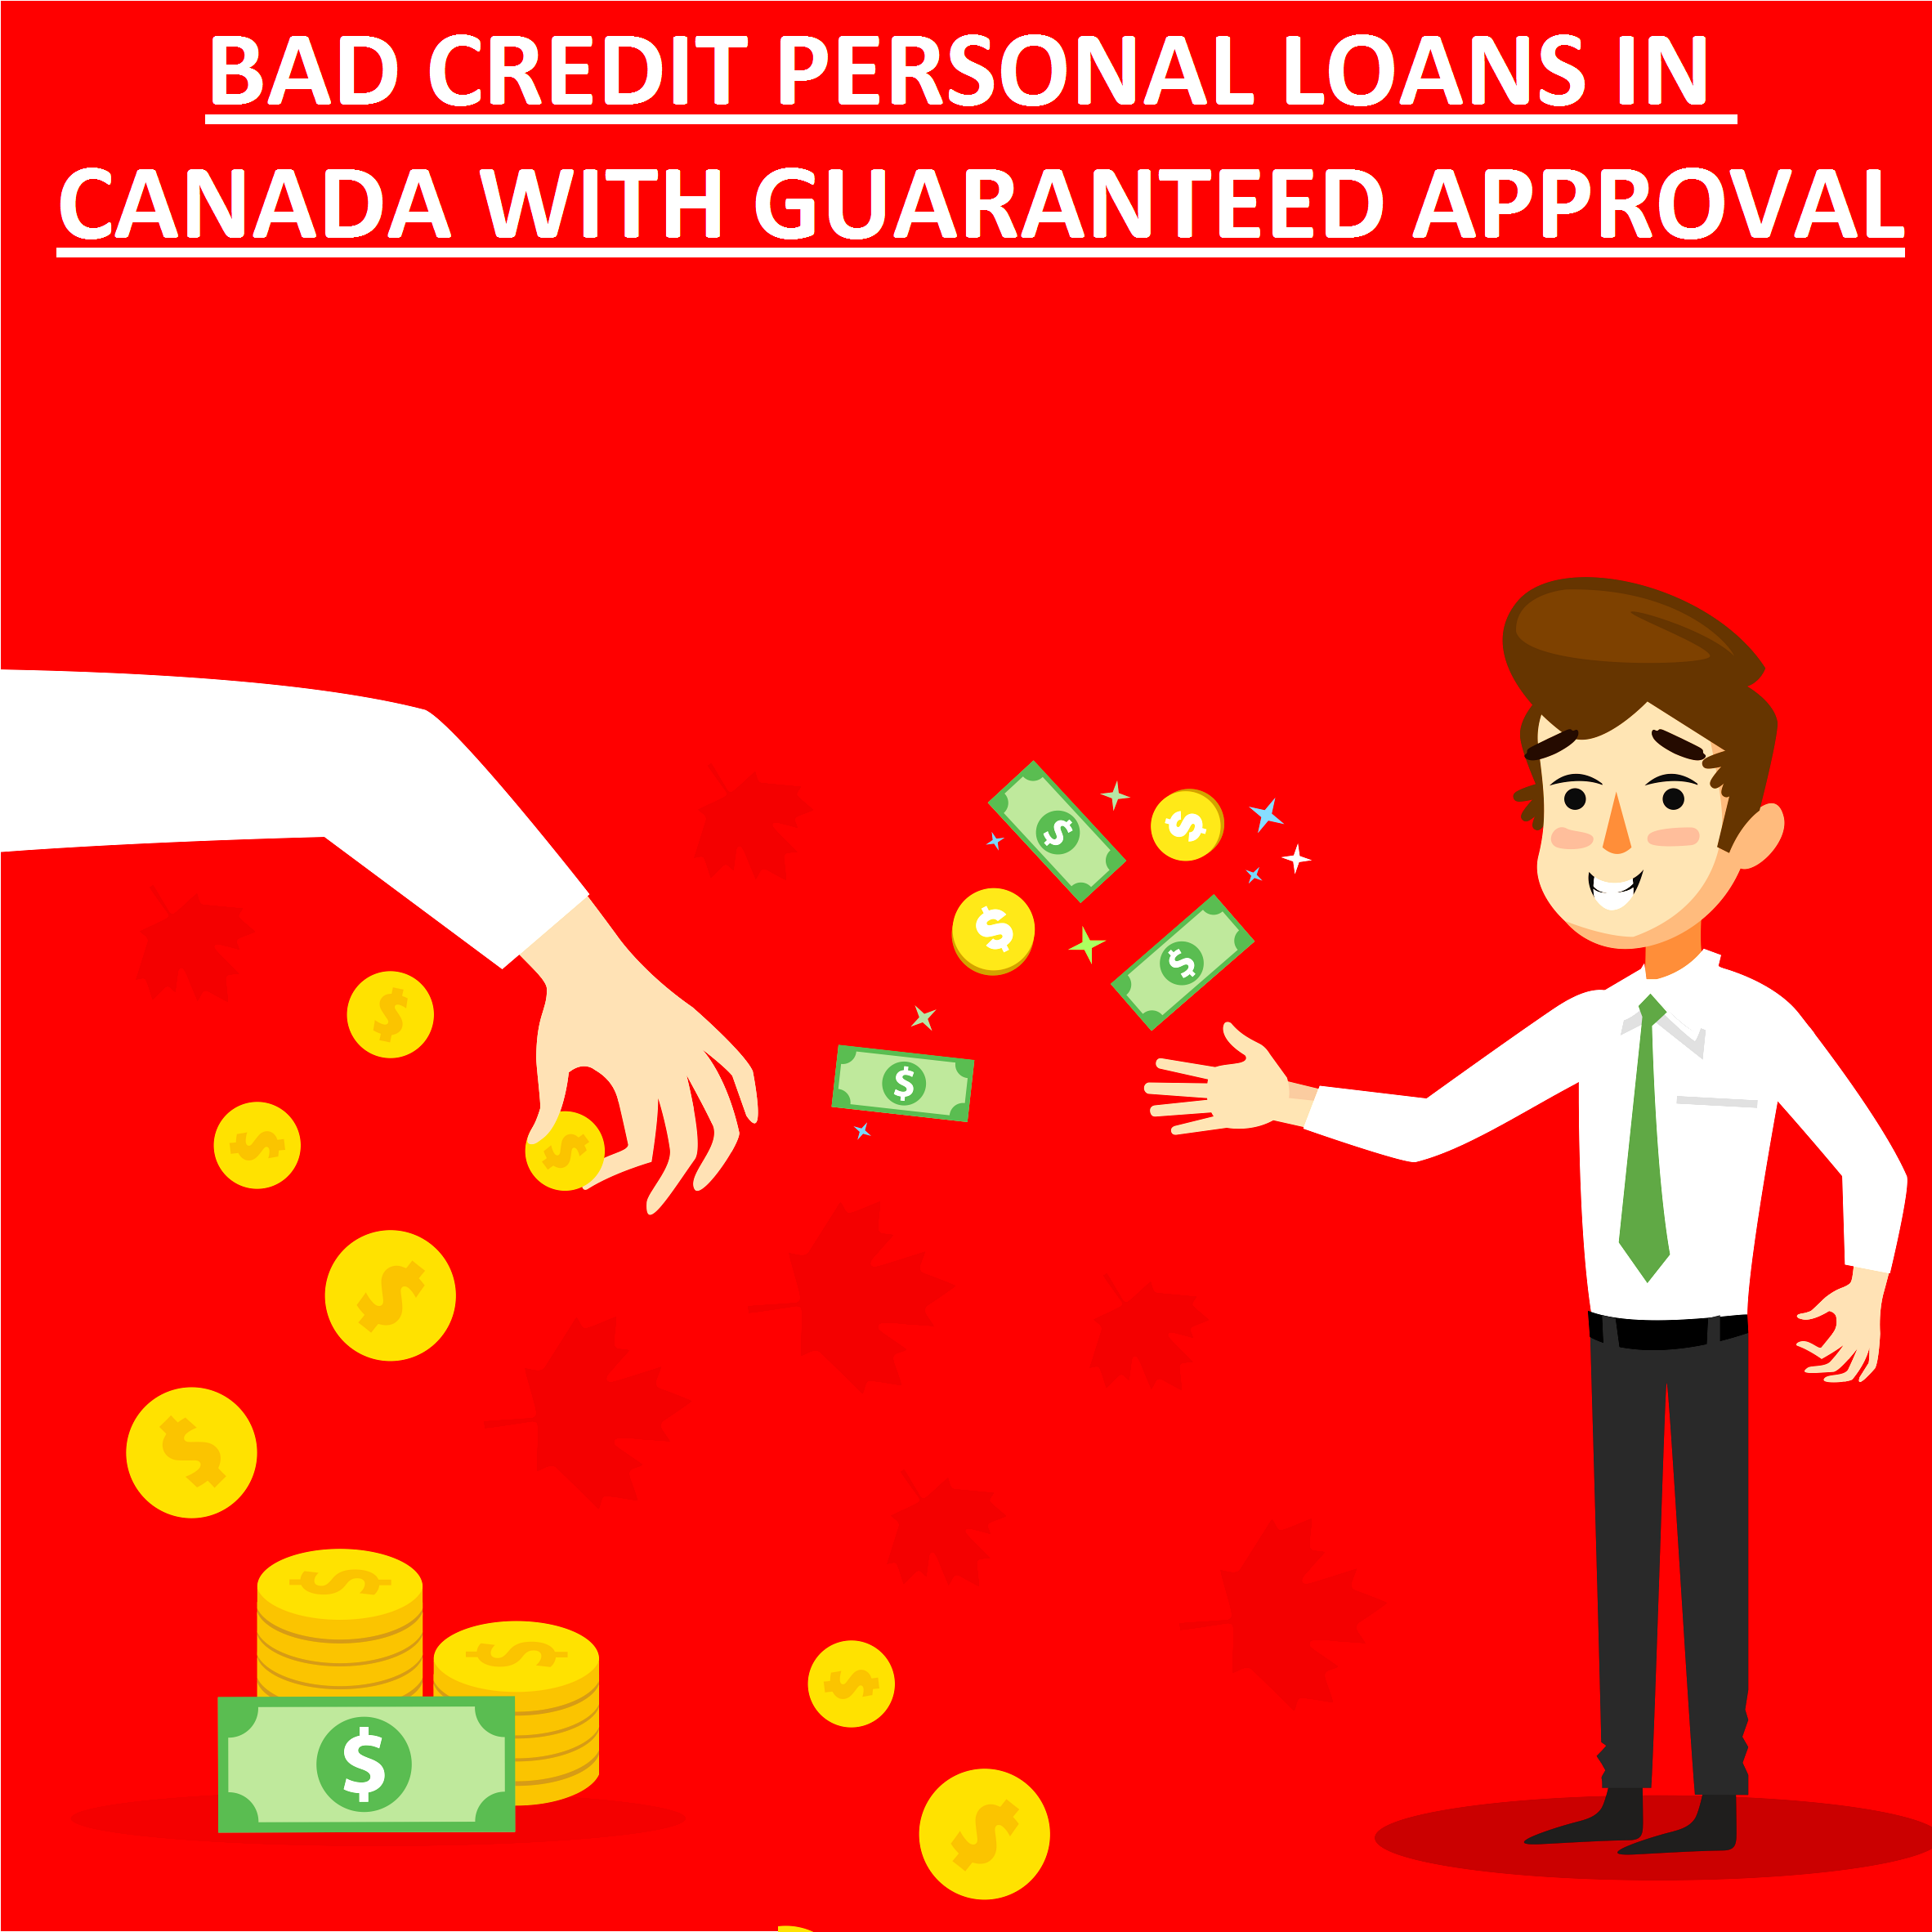 Bad Credit Personal Loans in Canada with Guaranteed Approval